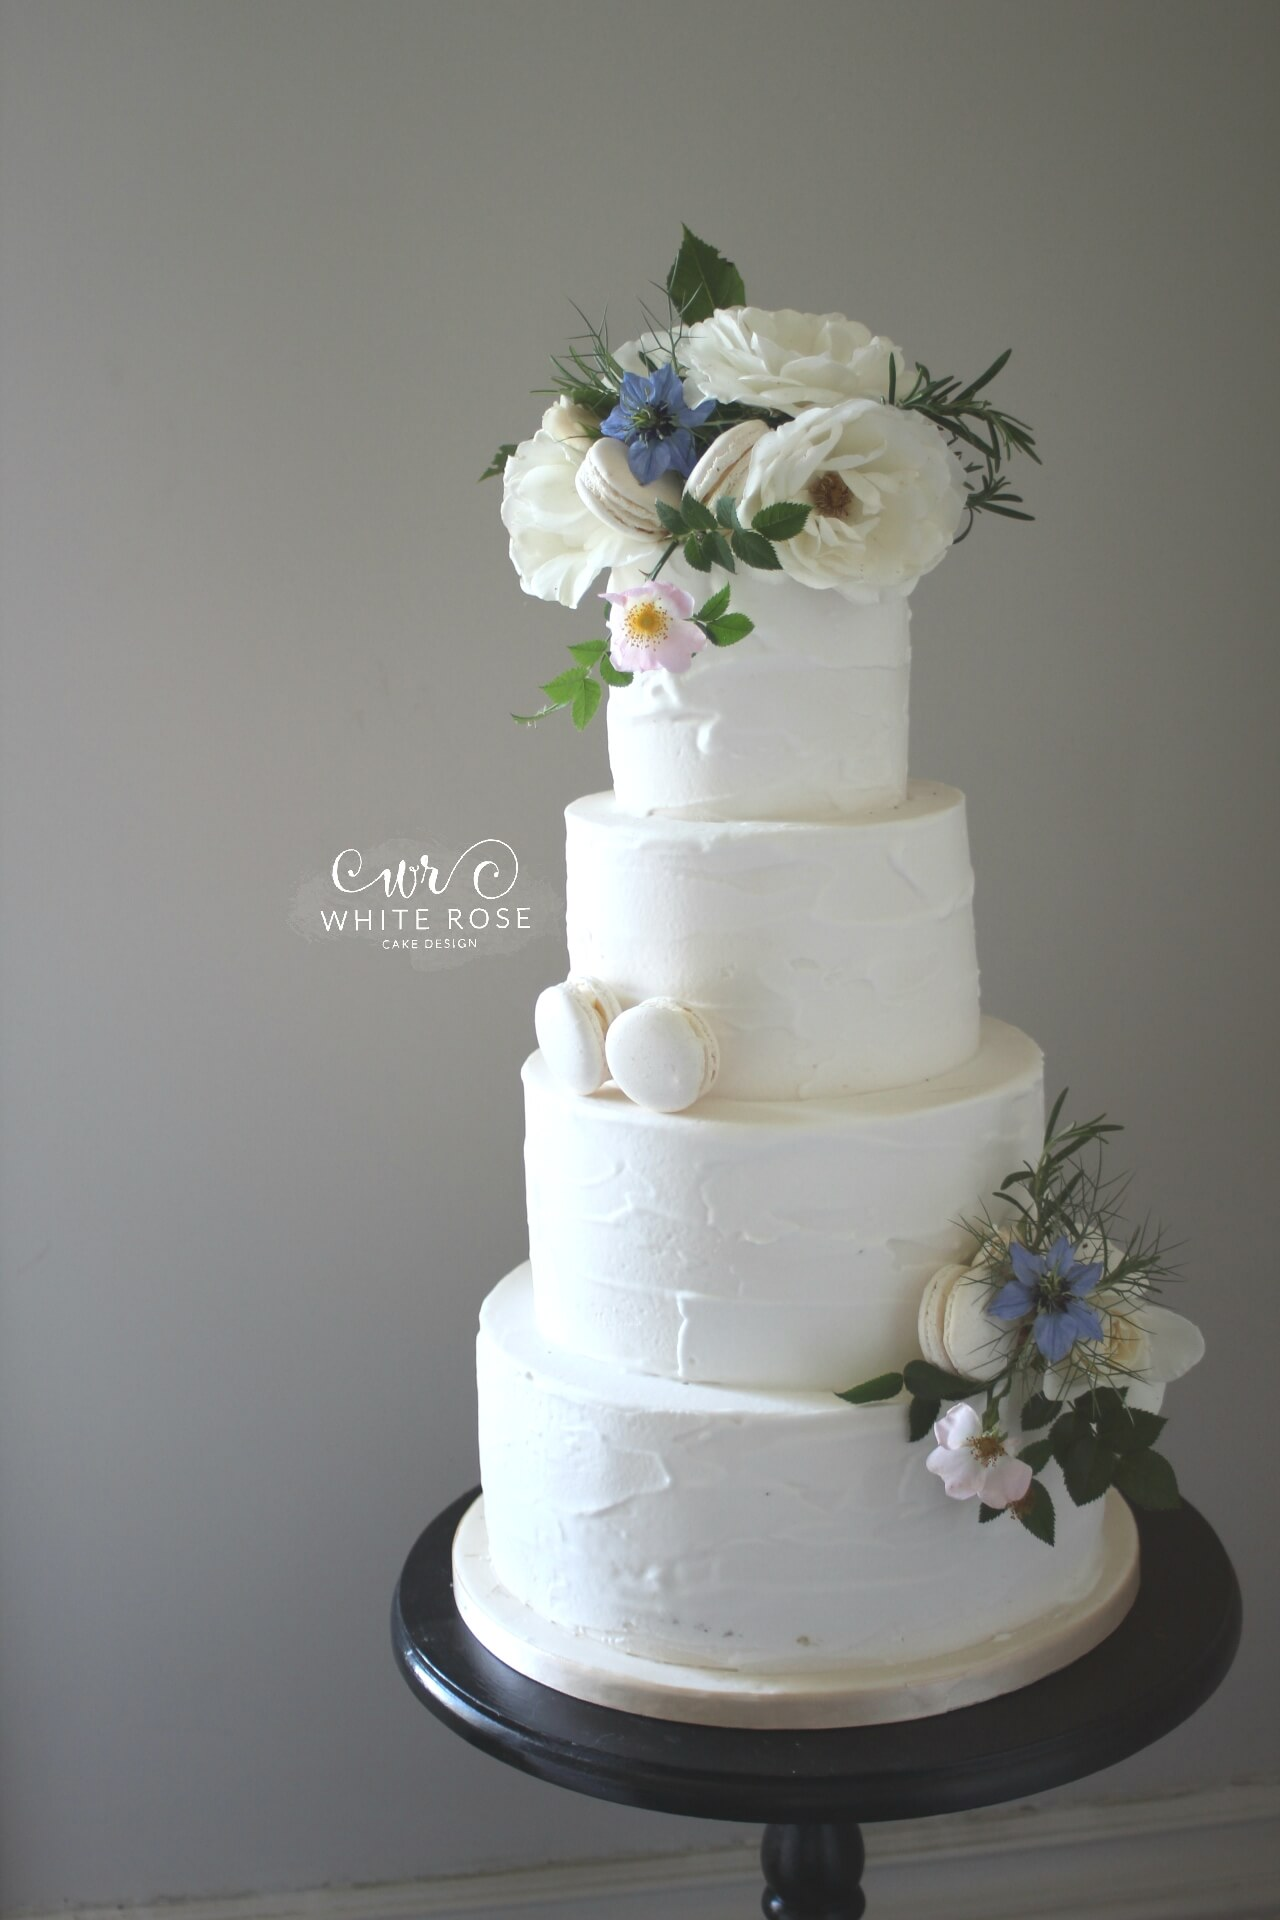 Textured Buttercream Four Tier Wedding Cake with Fresh Flowers and Macarons by White Rose Cake Design West Yorkshire (2)